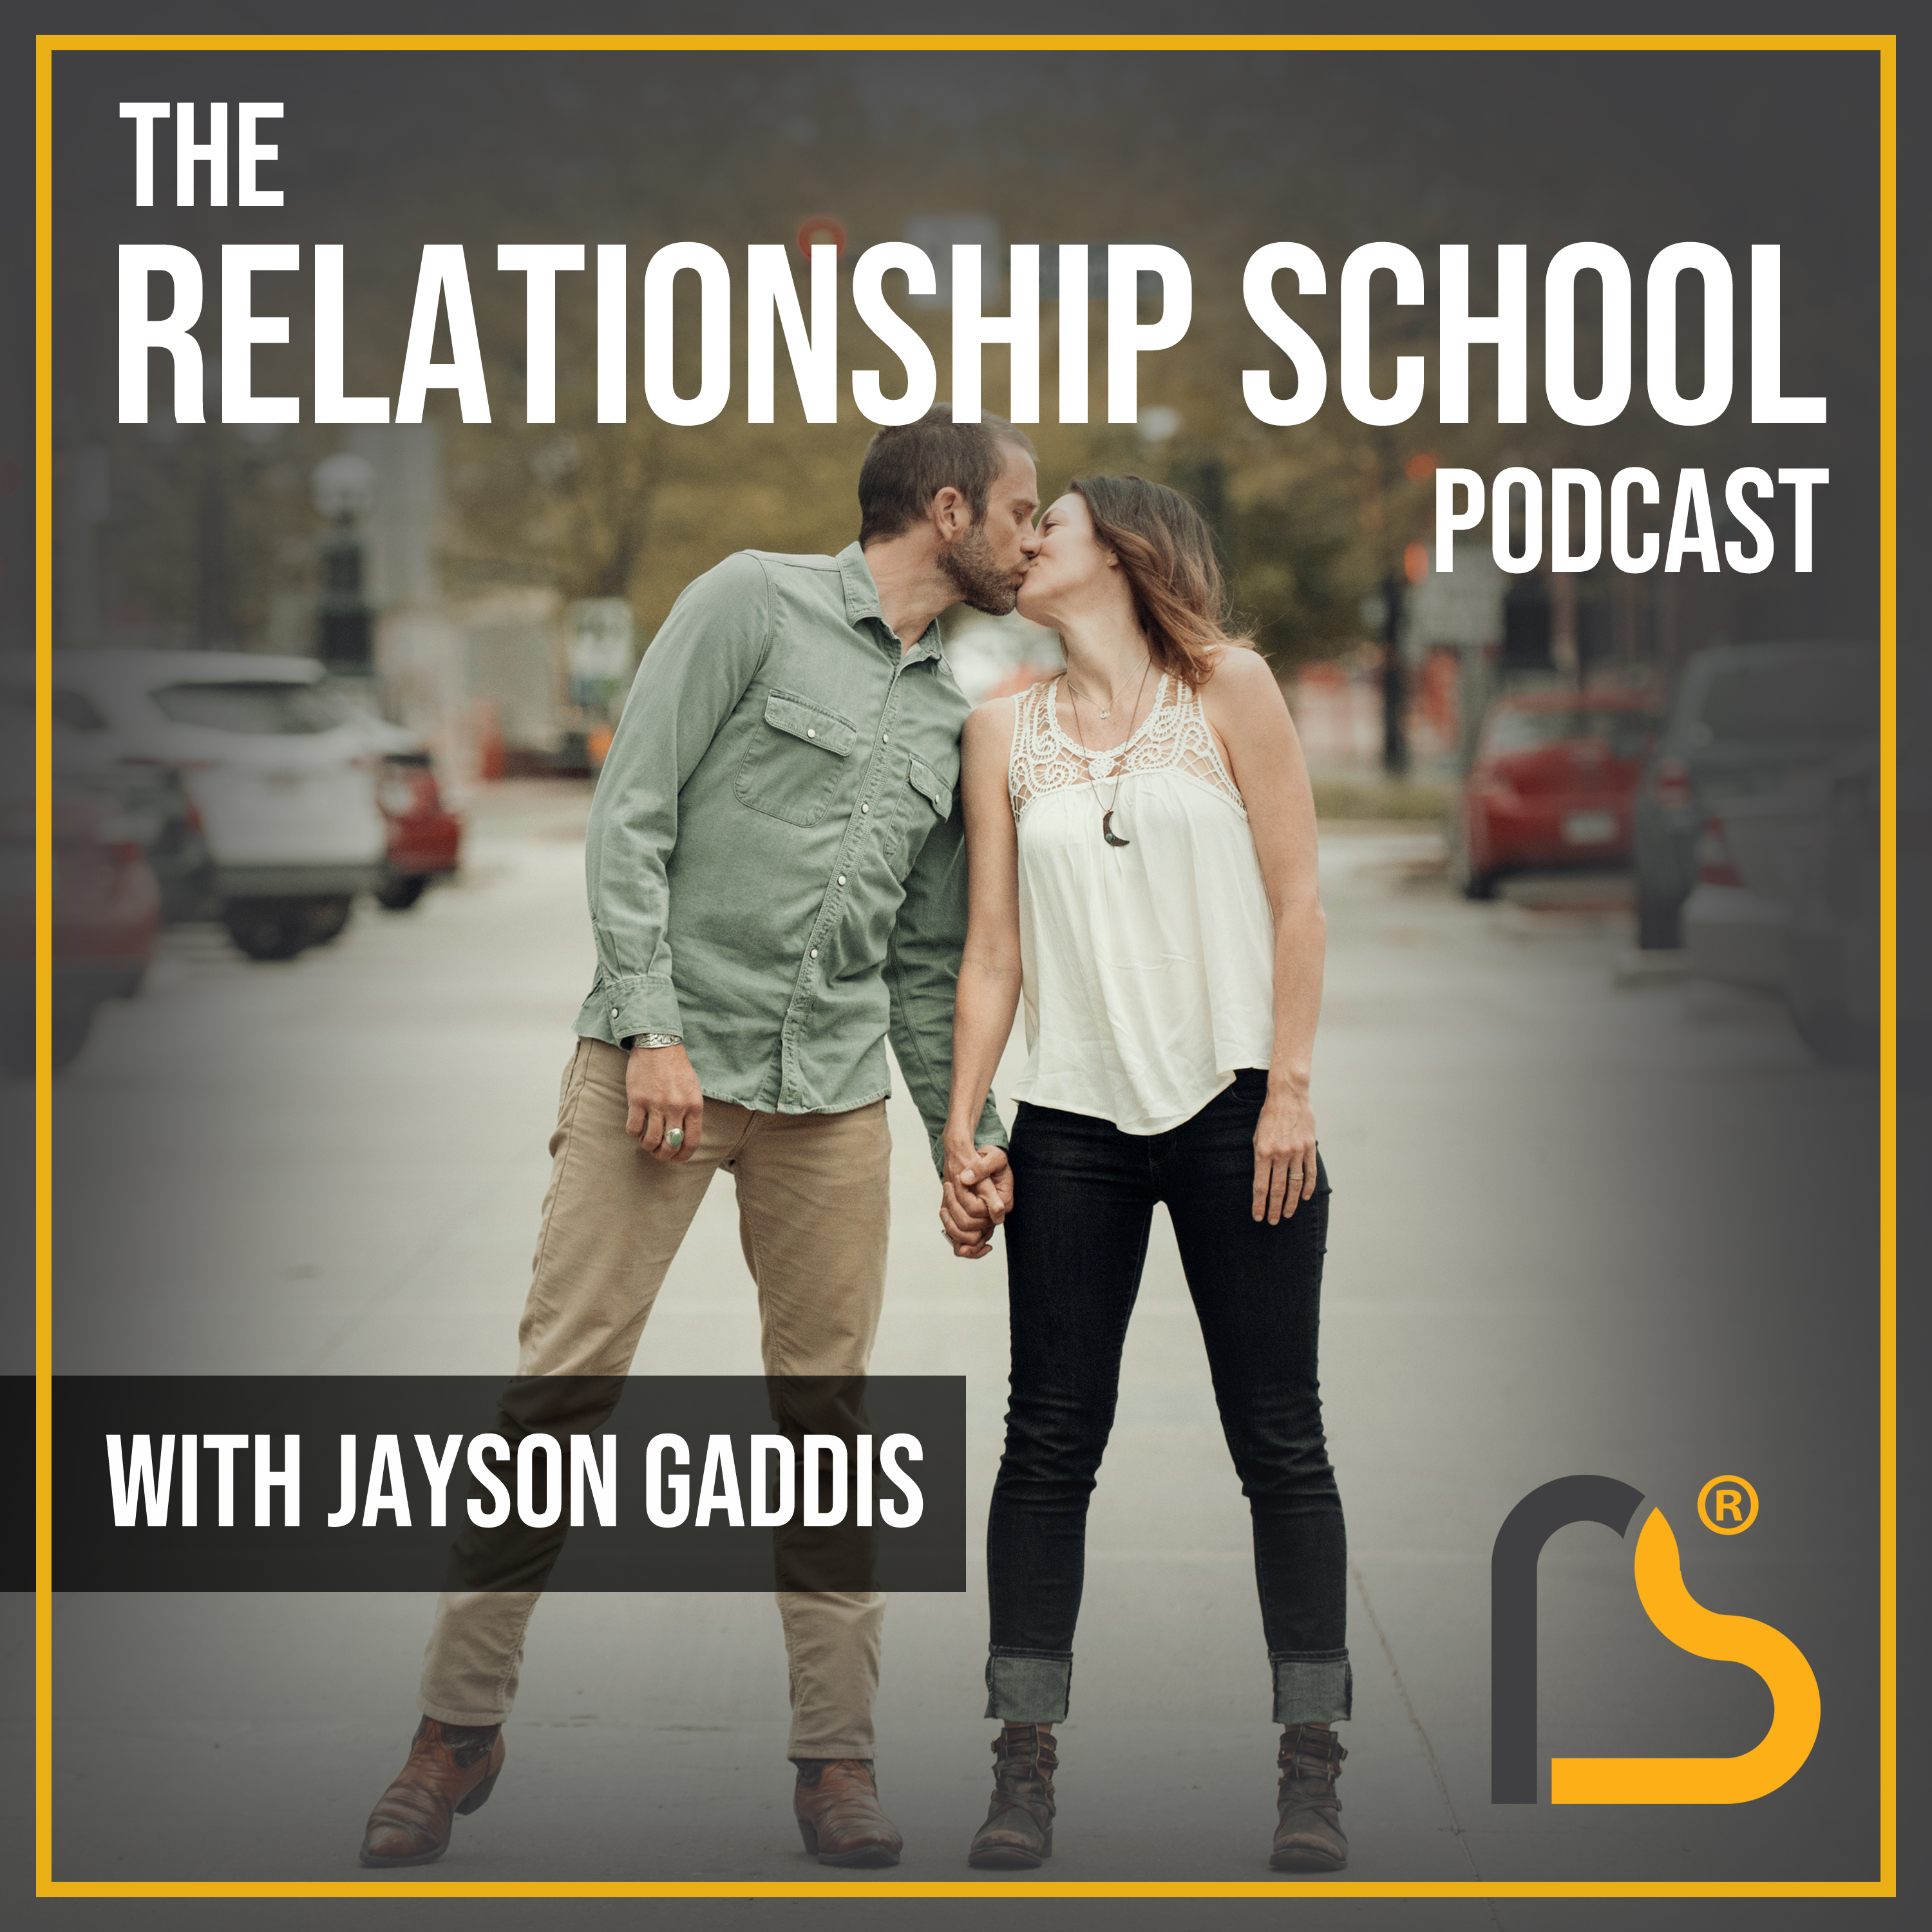 The Relationship School Podcast - Fragilizing & Dealing With Passive or Insecure People - Relationship School Podcast EPISODE 248